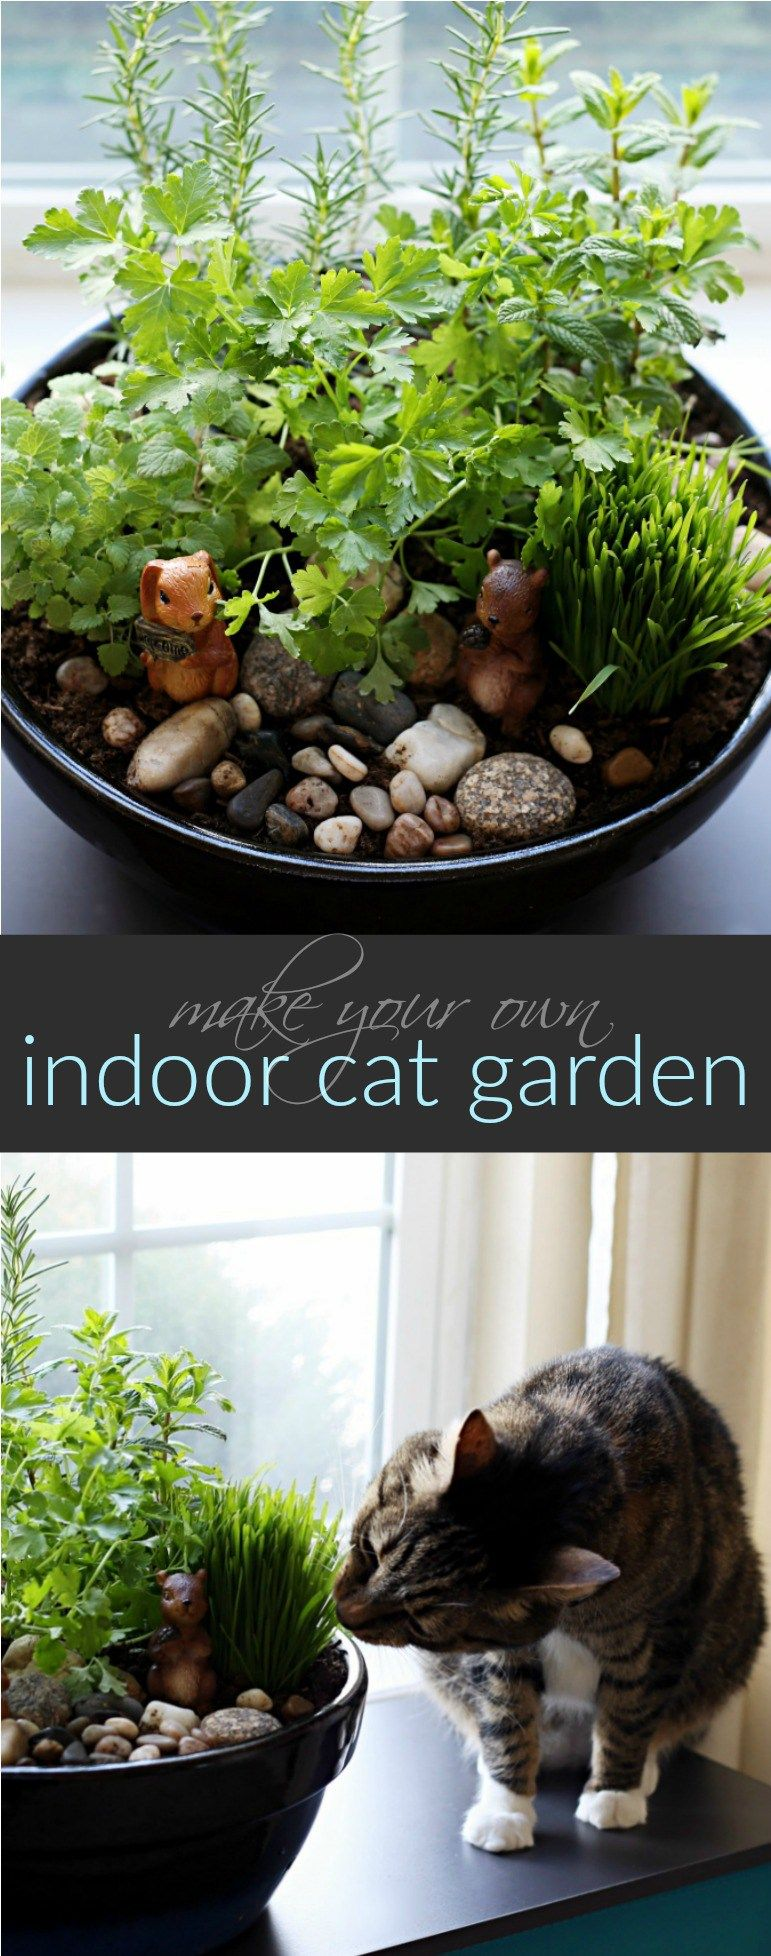 Make an Amazing DIY Indoor Cat Garden | Cat garden, Ads and ...